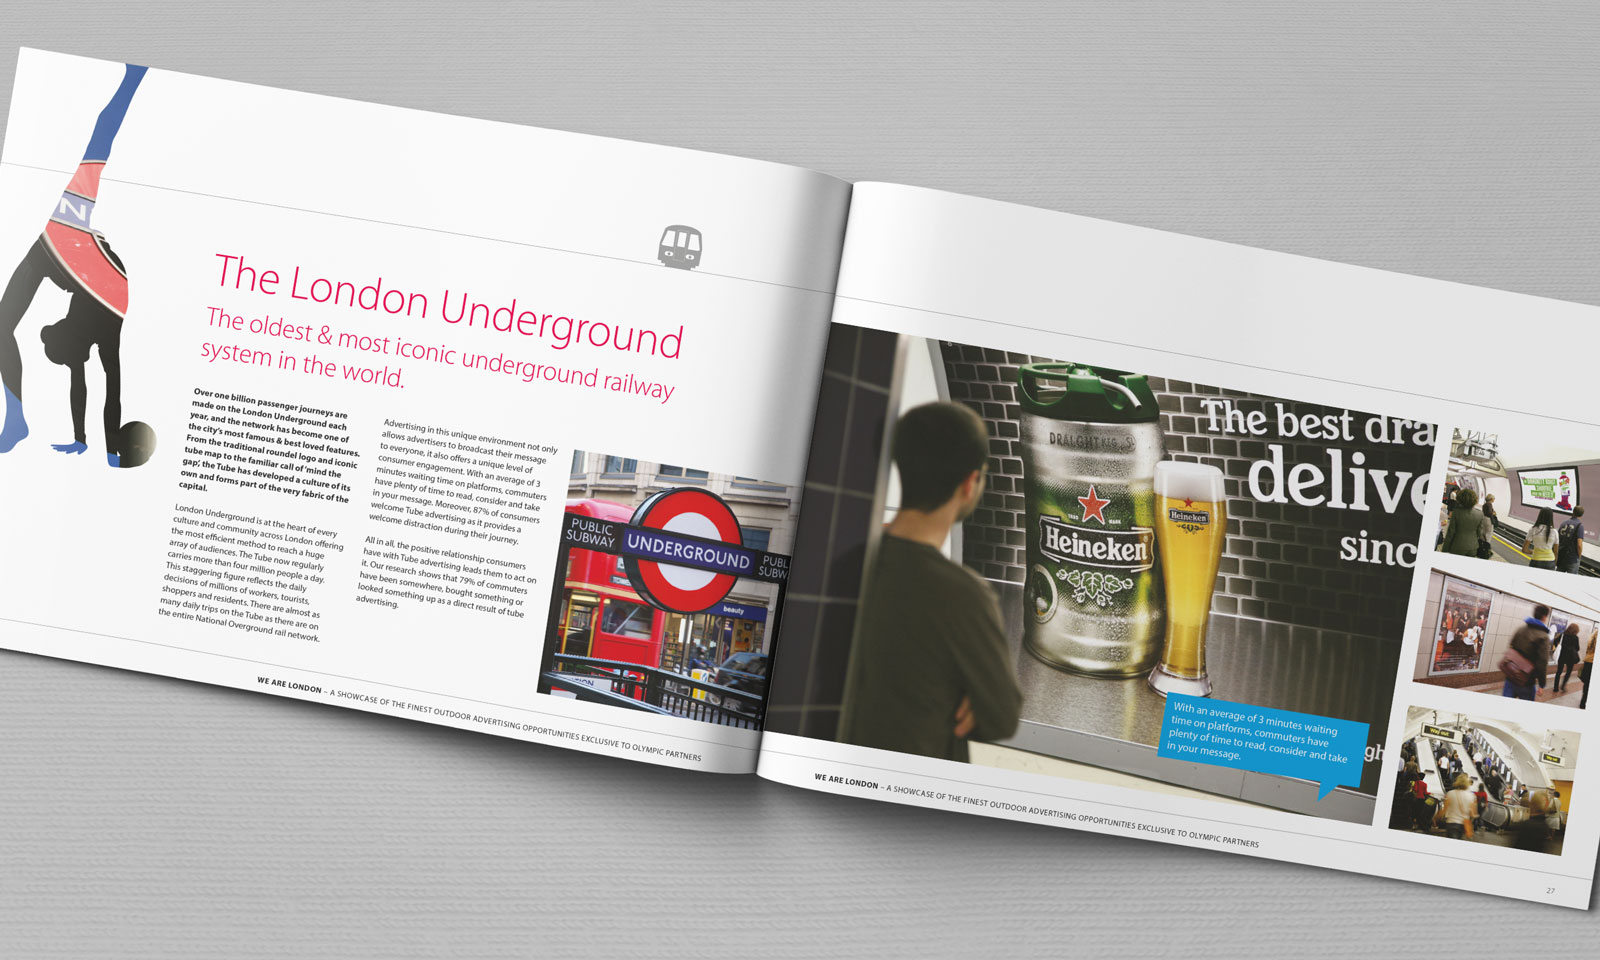 CBS Outdoor - London Underground spread